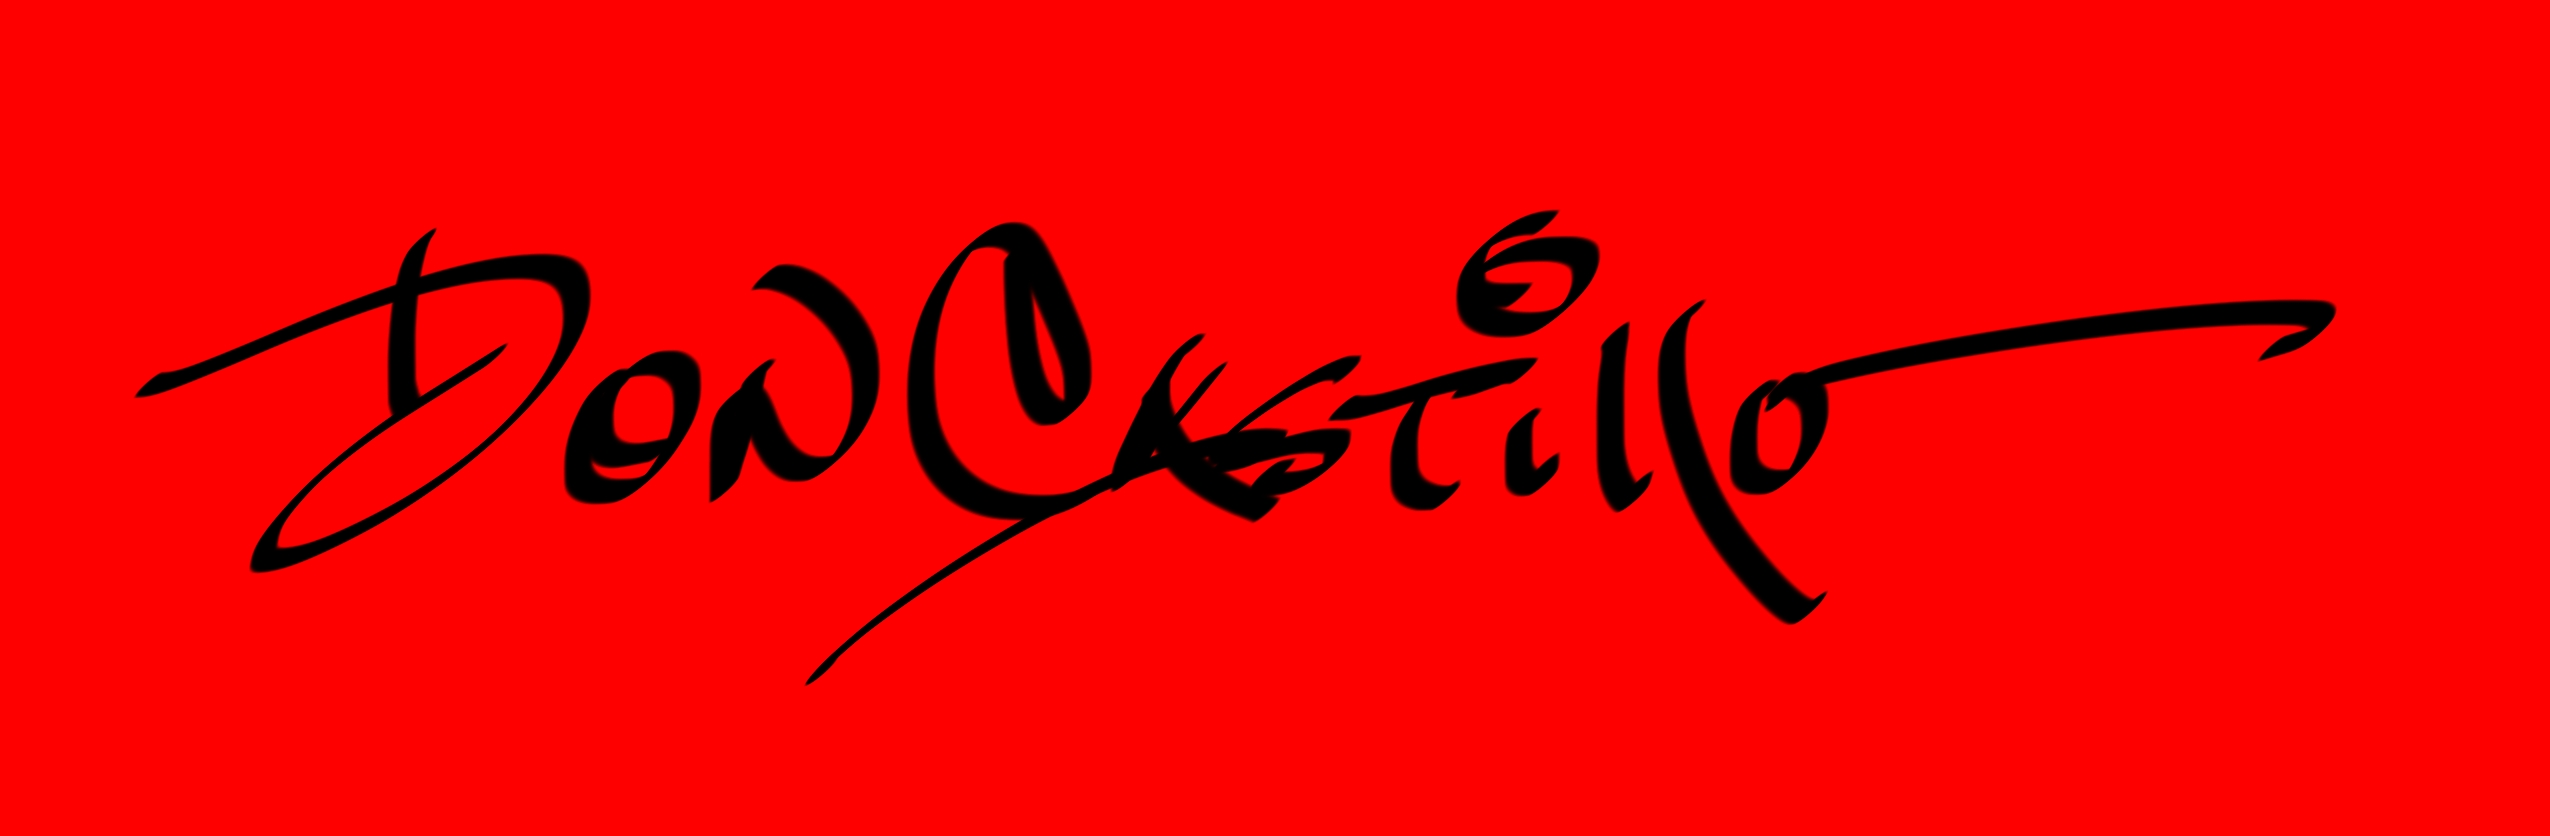 Don Castillo's Signature